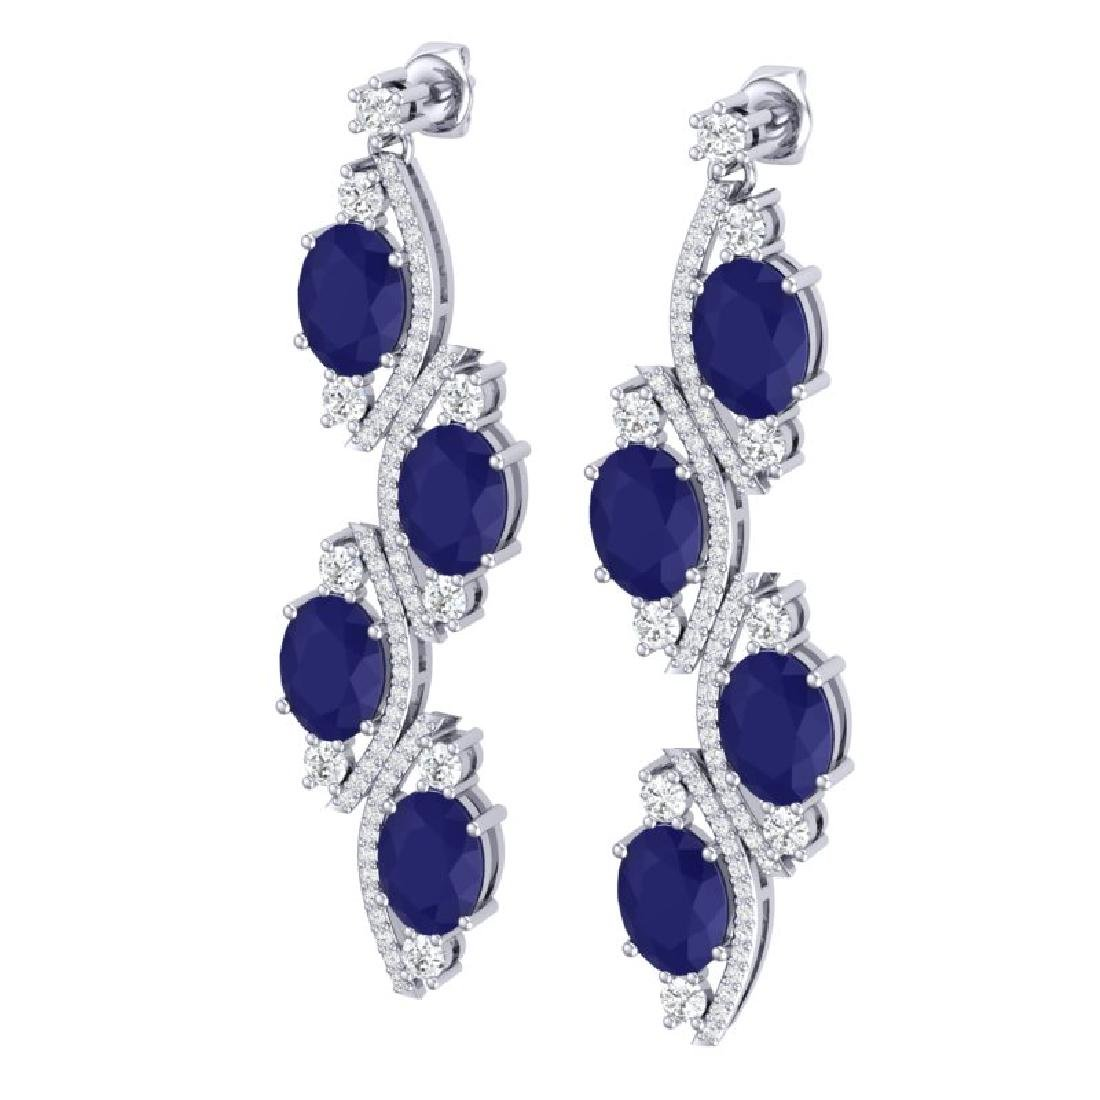 16.12 CTW Royalty Sapphire & VS Diamond Earrings 18K - 2